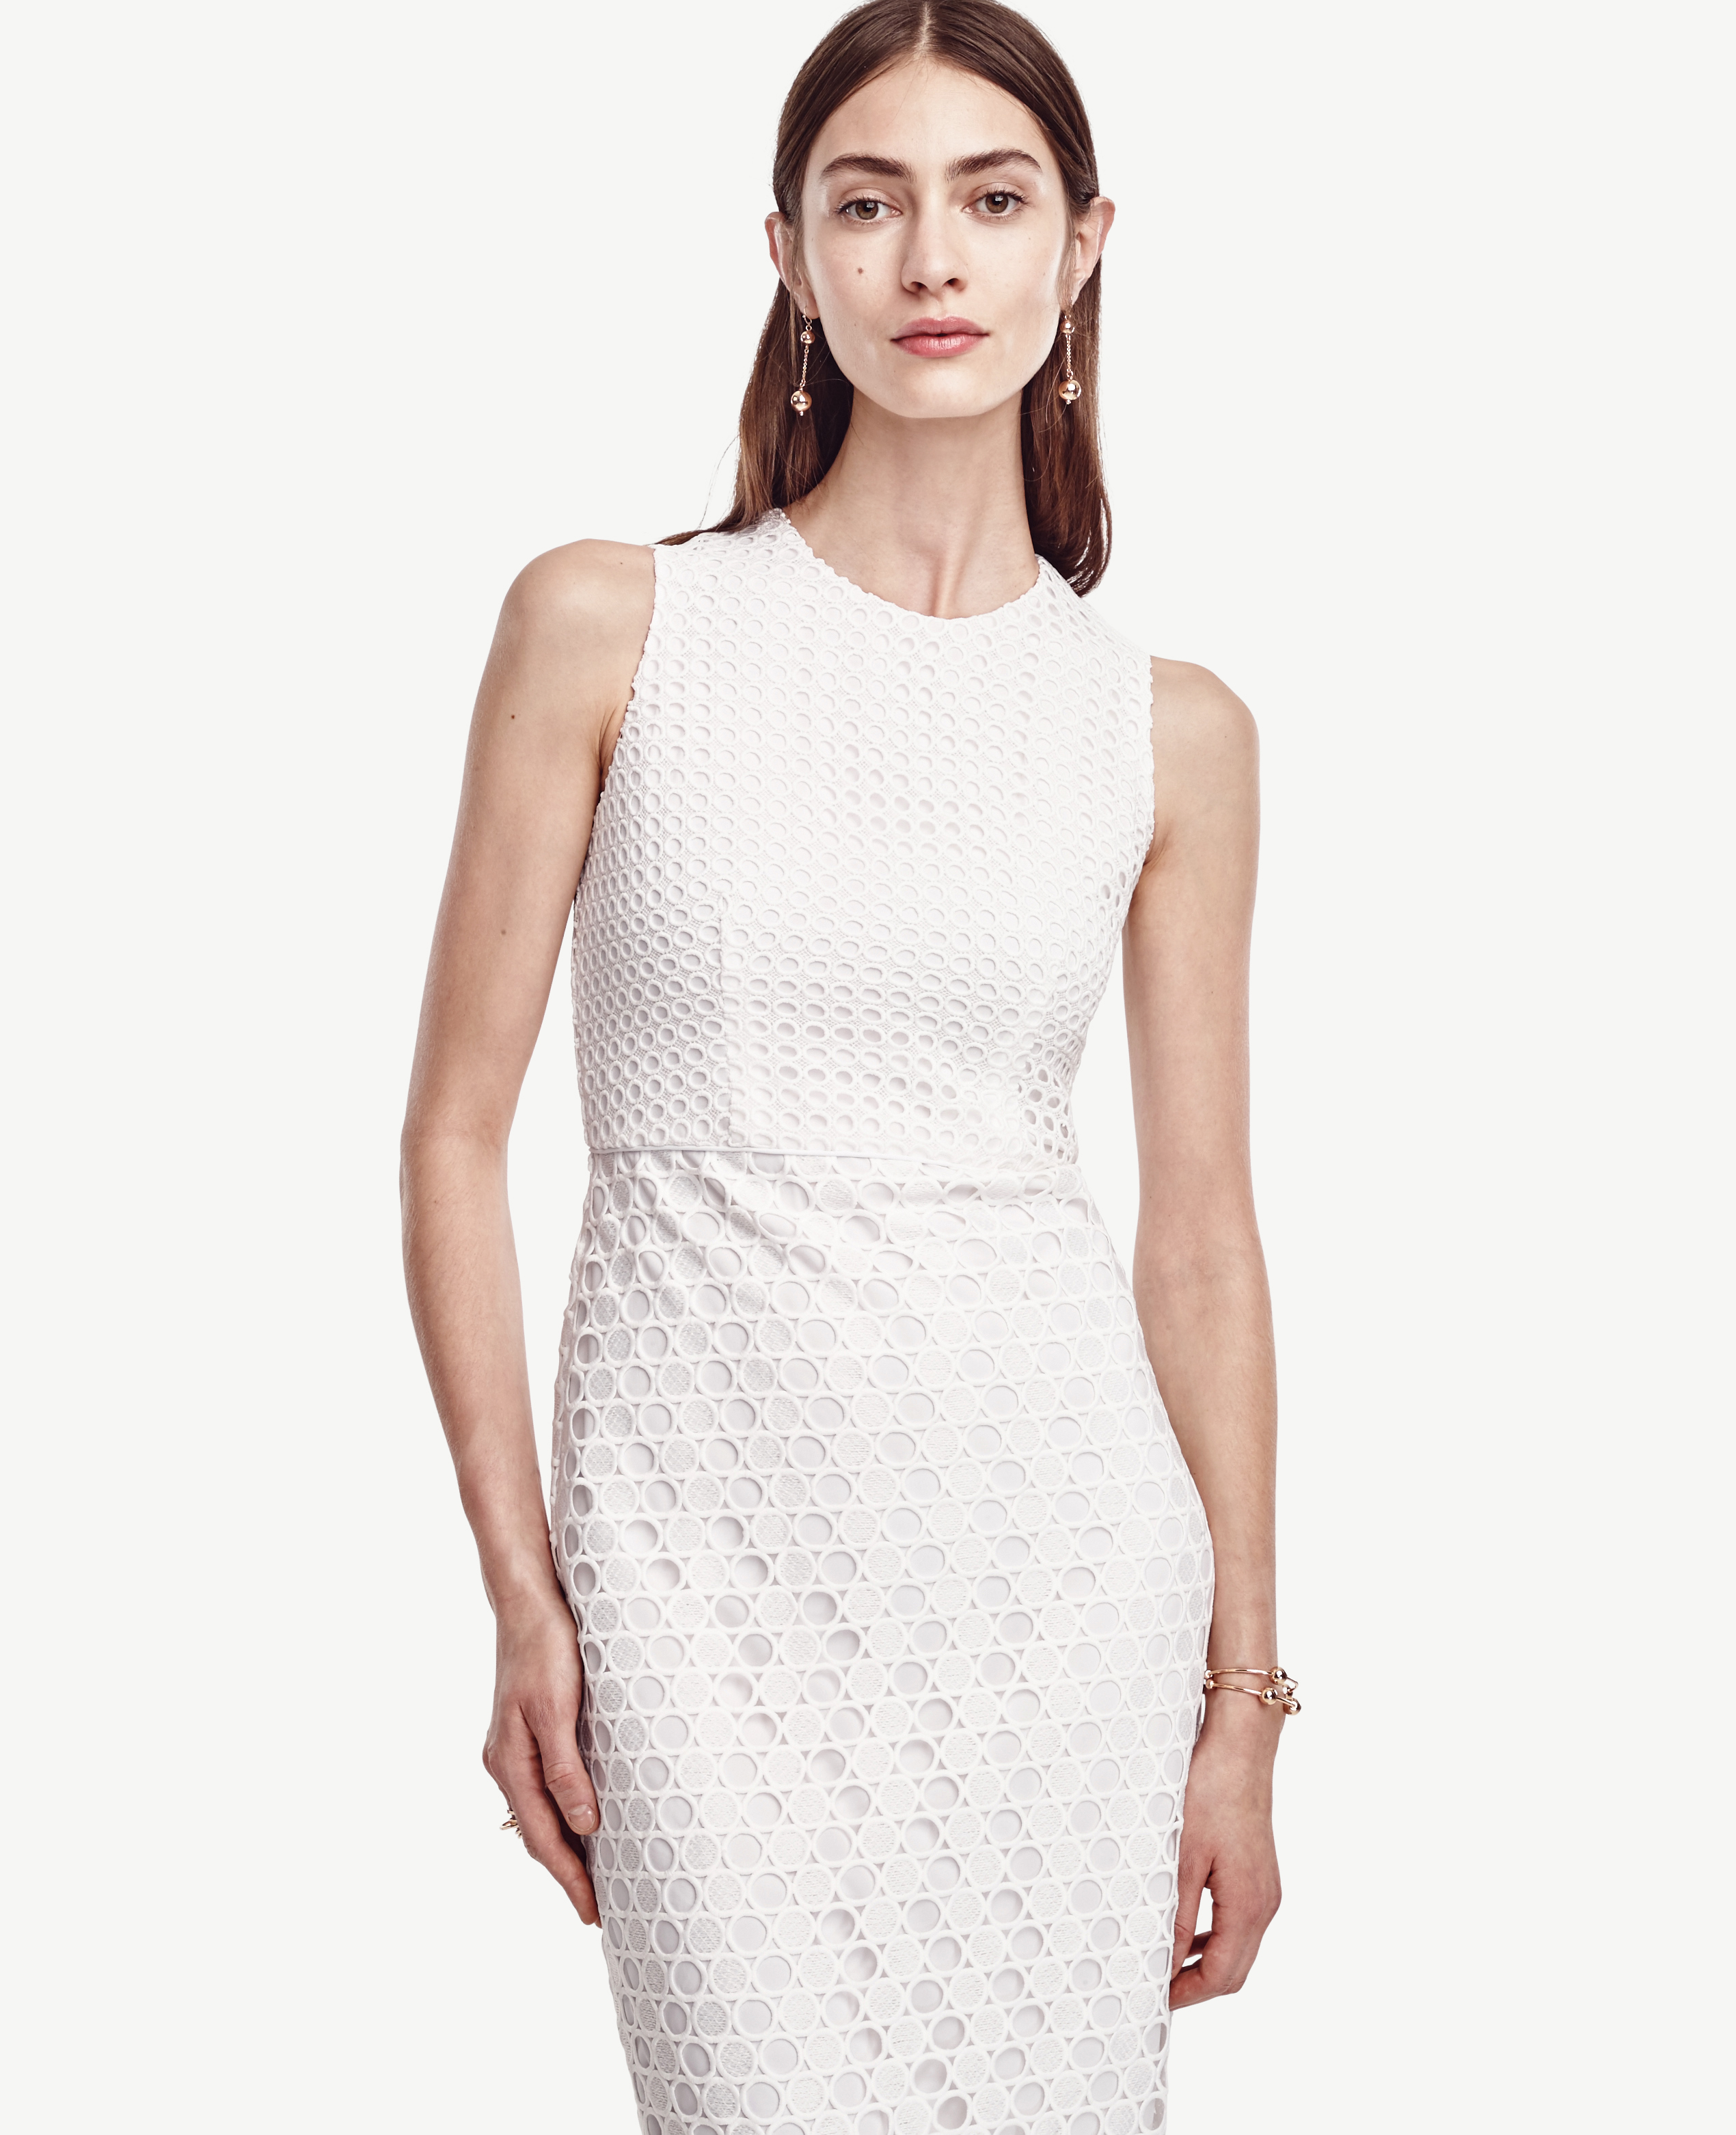 c685d8bef9c9 Lyst - Ann Taylor Petite Geo Eyelet Dress in White